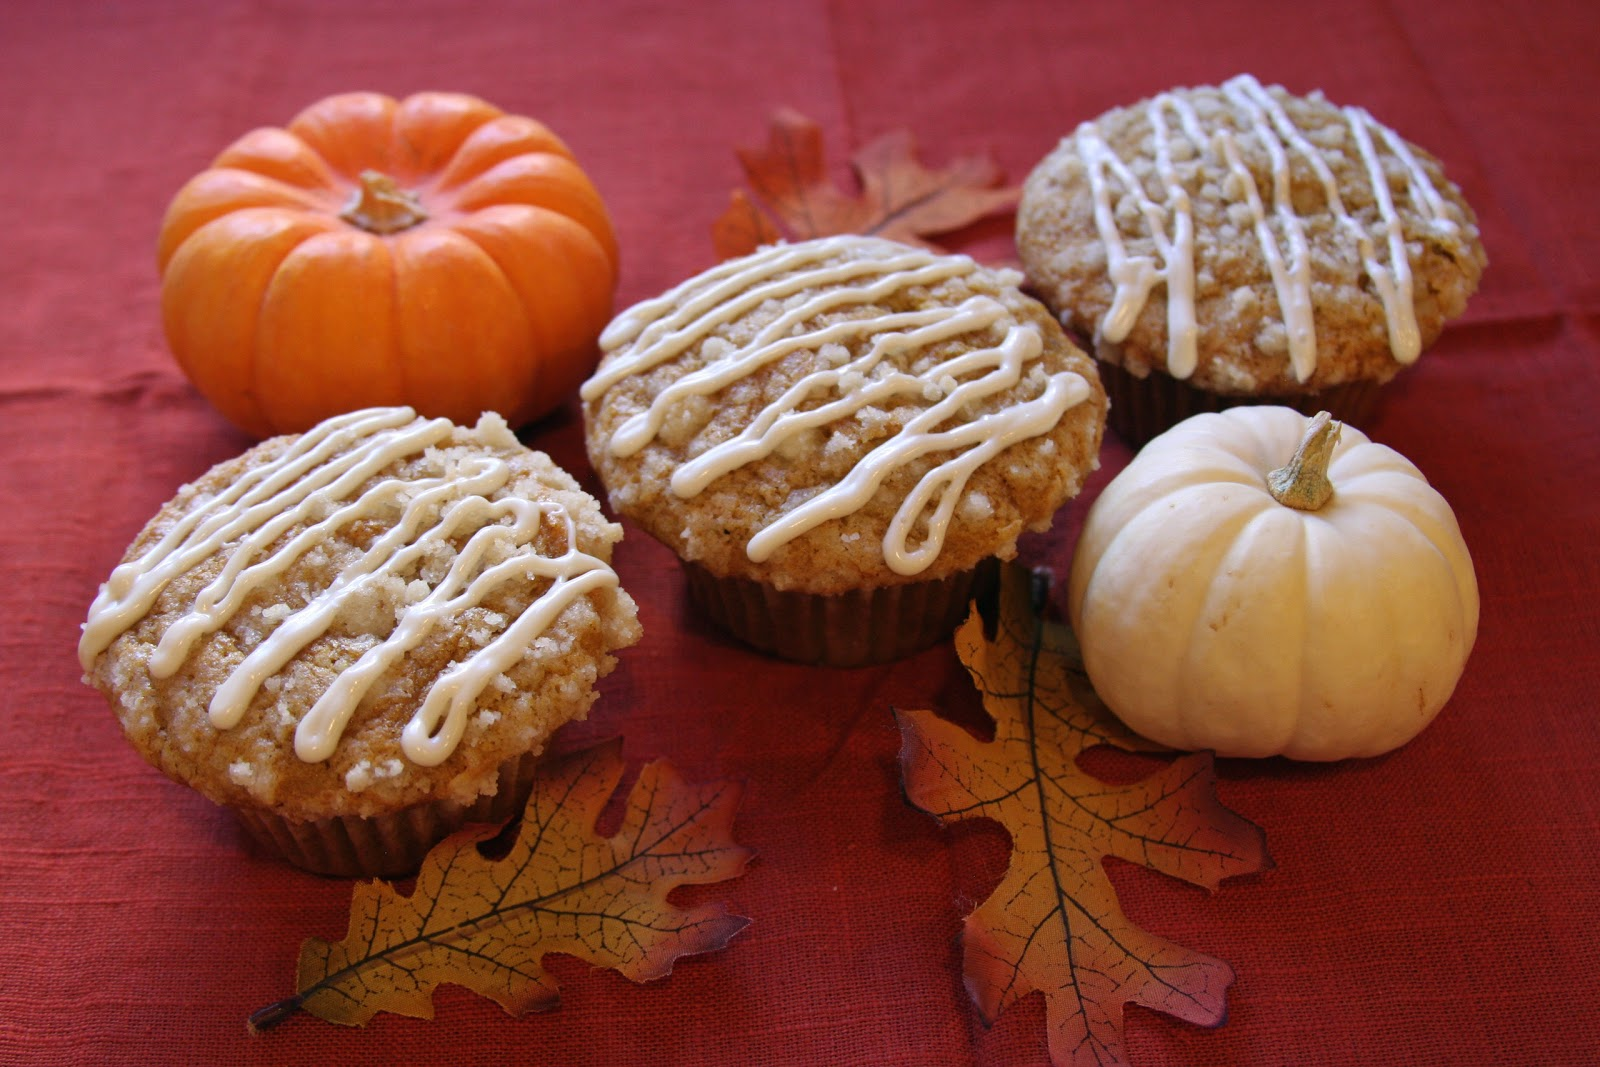 ... Culinary Indulgence: Pumpkin Spiced Muffins with Vanilla Maple Glaze